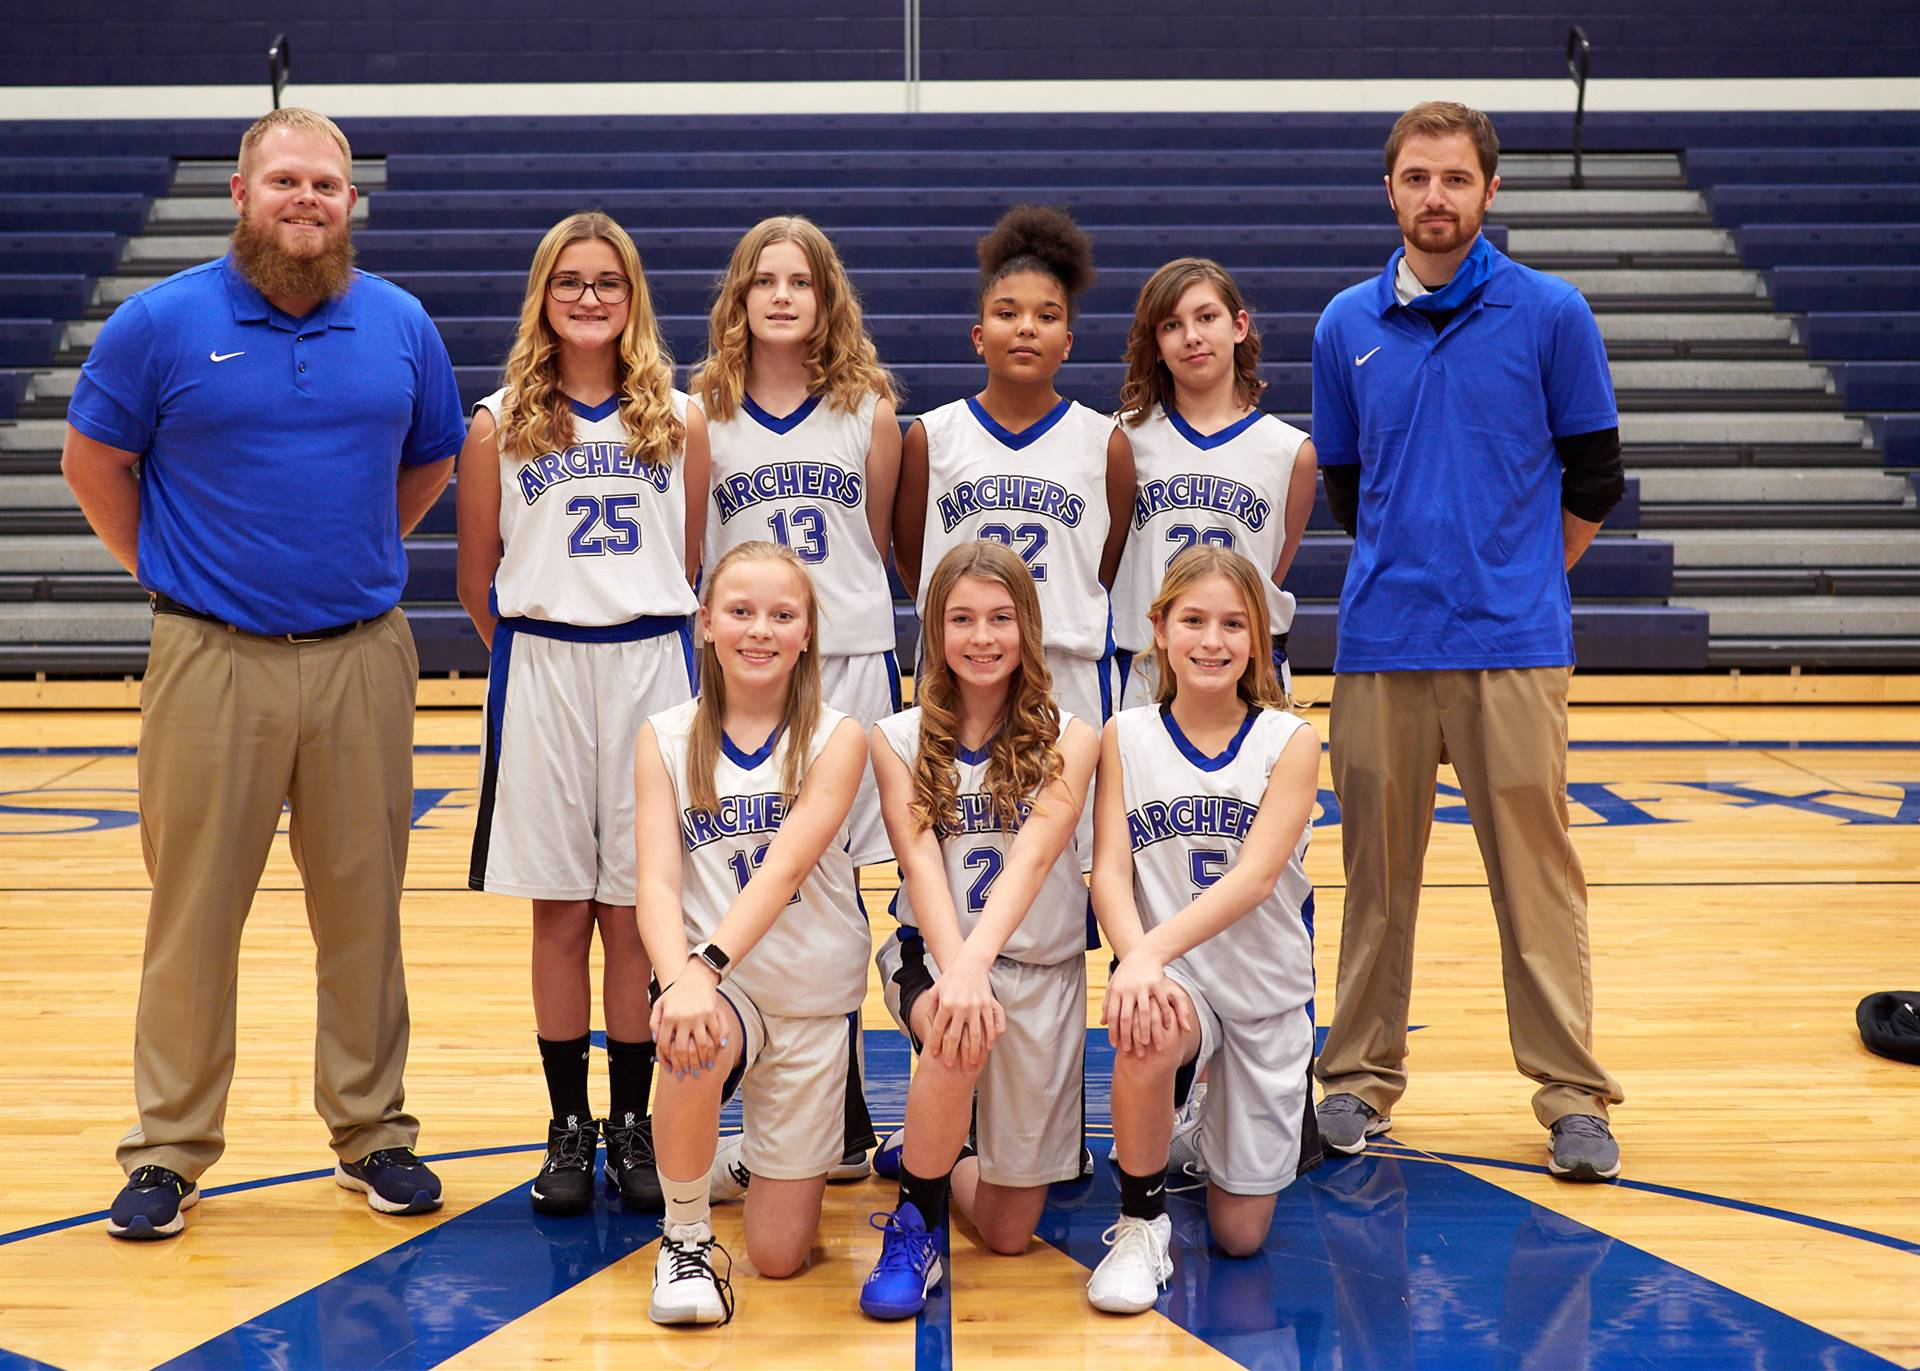 7th Grade Girls' Basketball